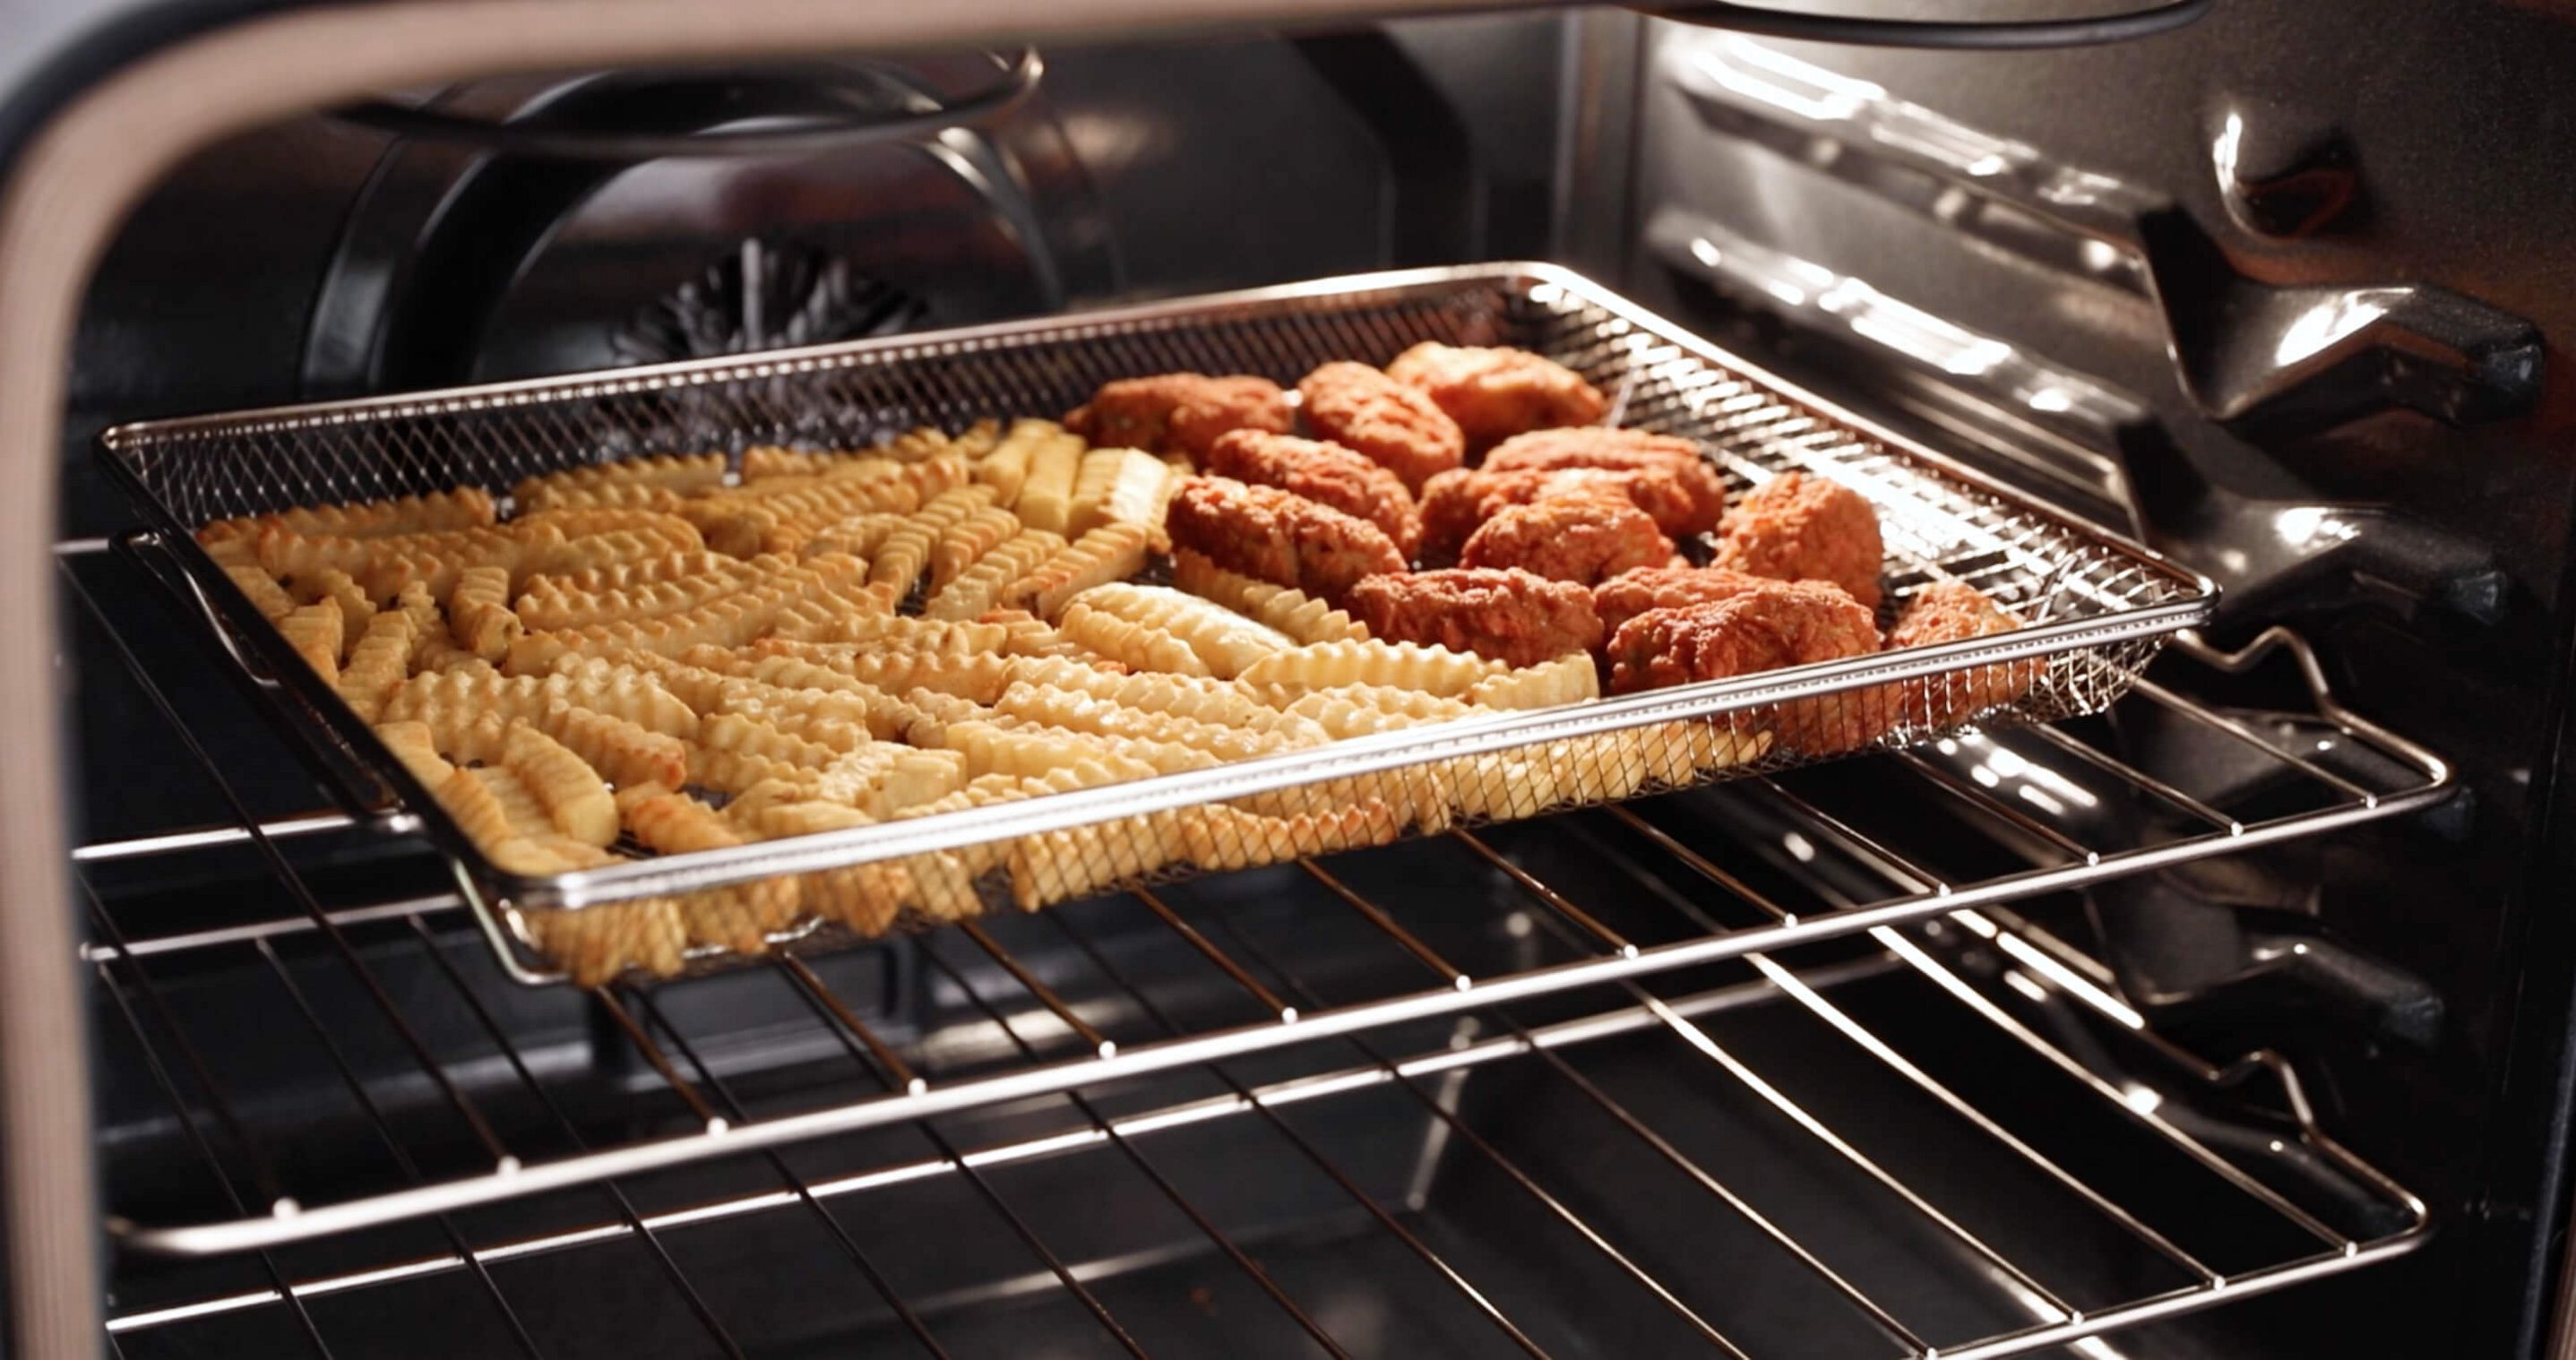 Fries and chicken wings in the dishwasher-safe air fry basket.